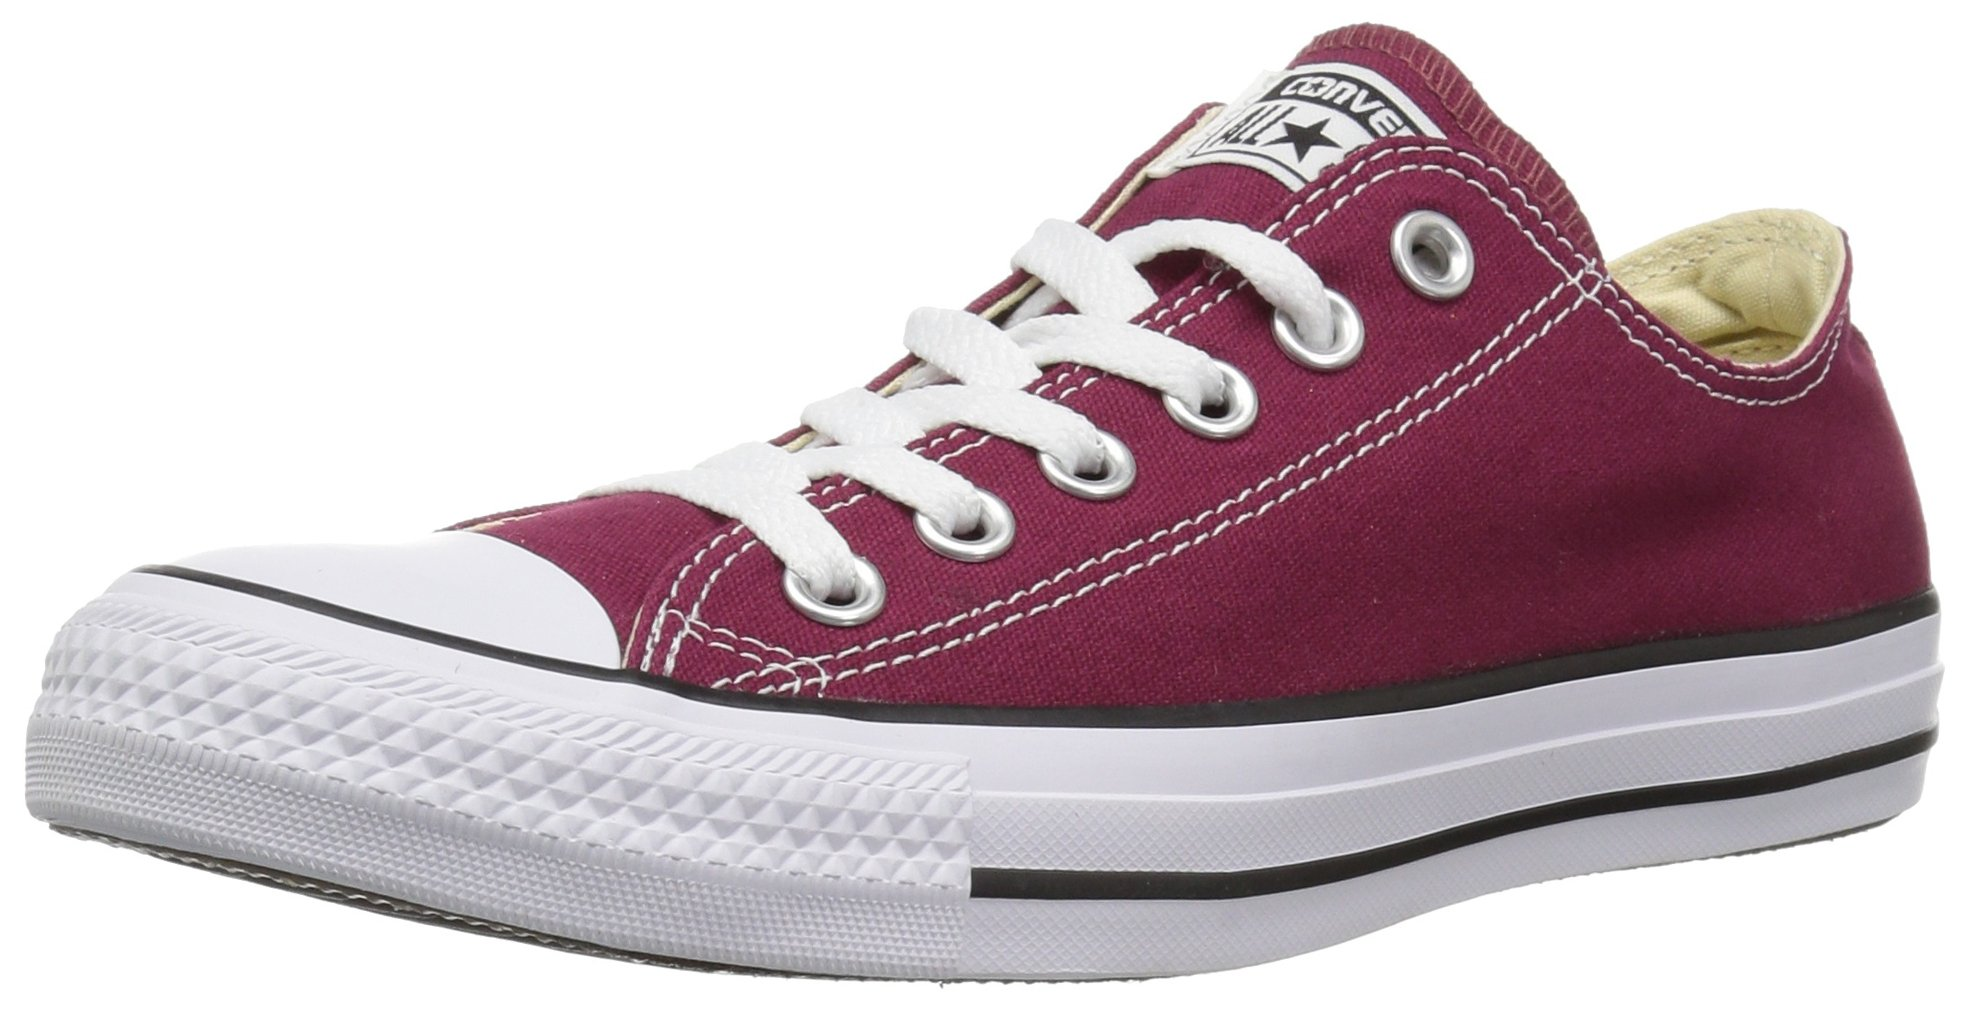 Converse Chuck Taylor All Star 2018 Seasonal Low Top Sneaker, Maroon, 6 M US by Converse